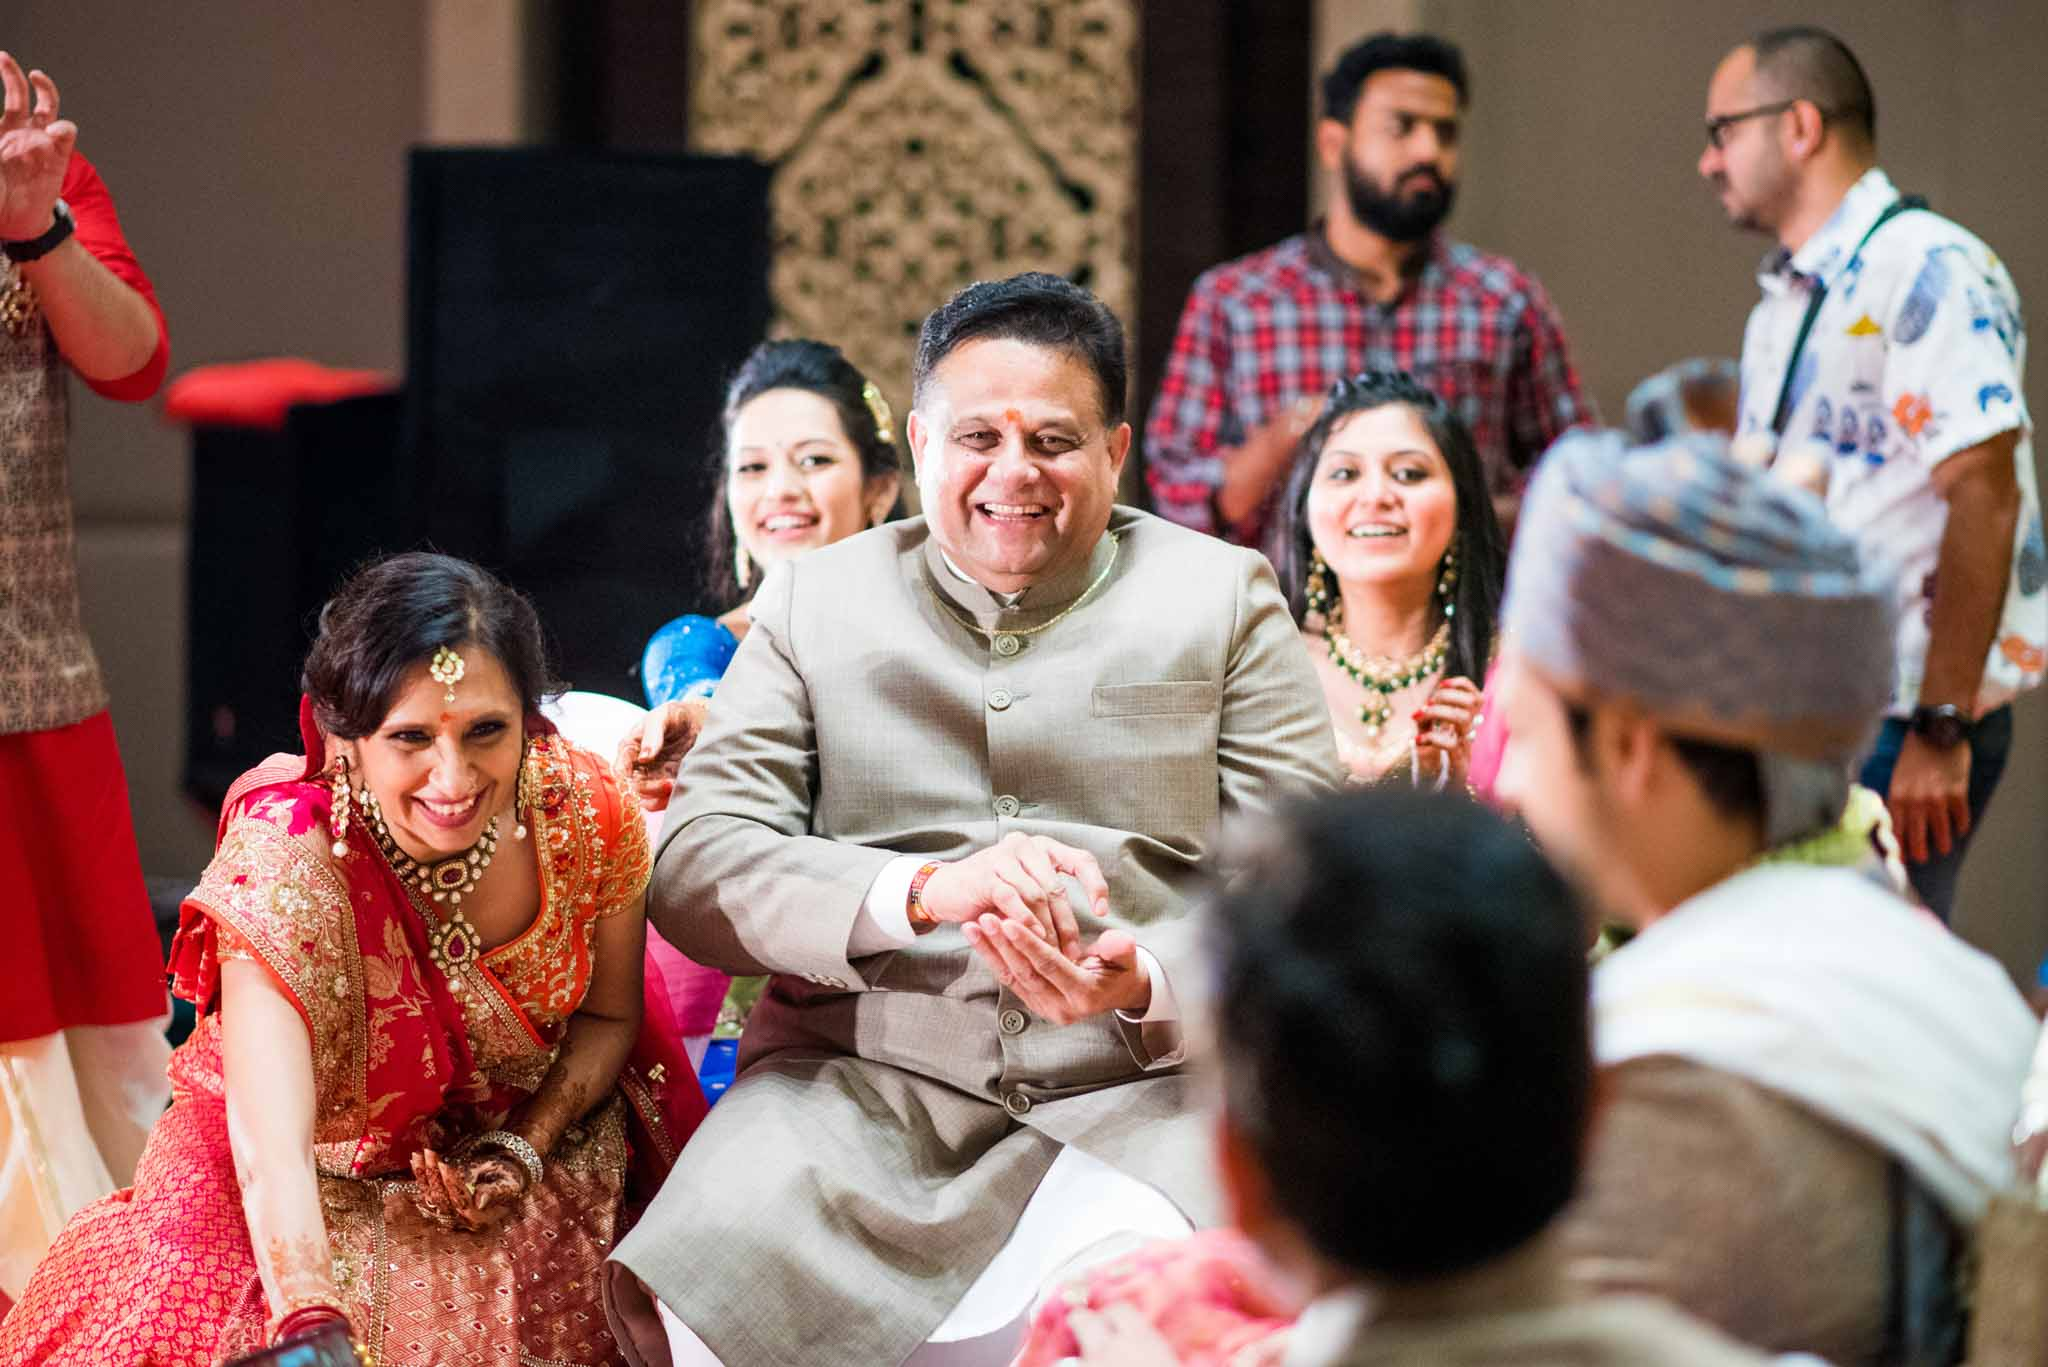 StRegis-Palladium-Mumbai-Candid-Wedding-Photography-43